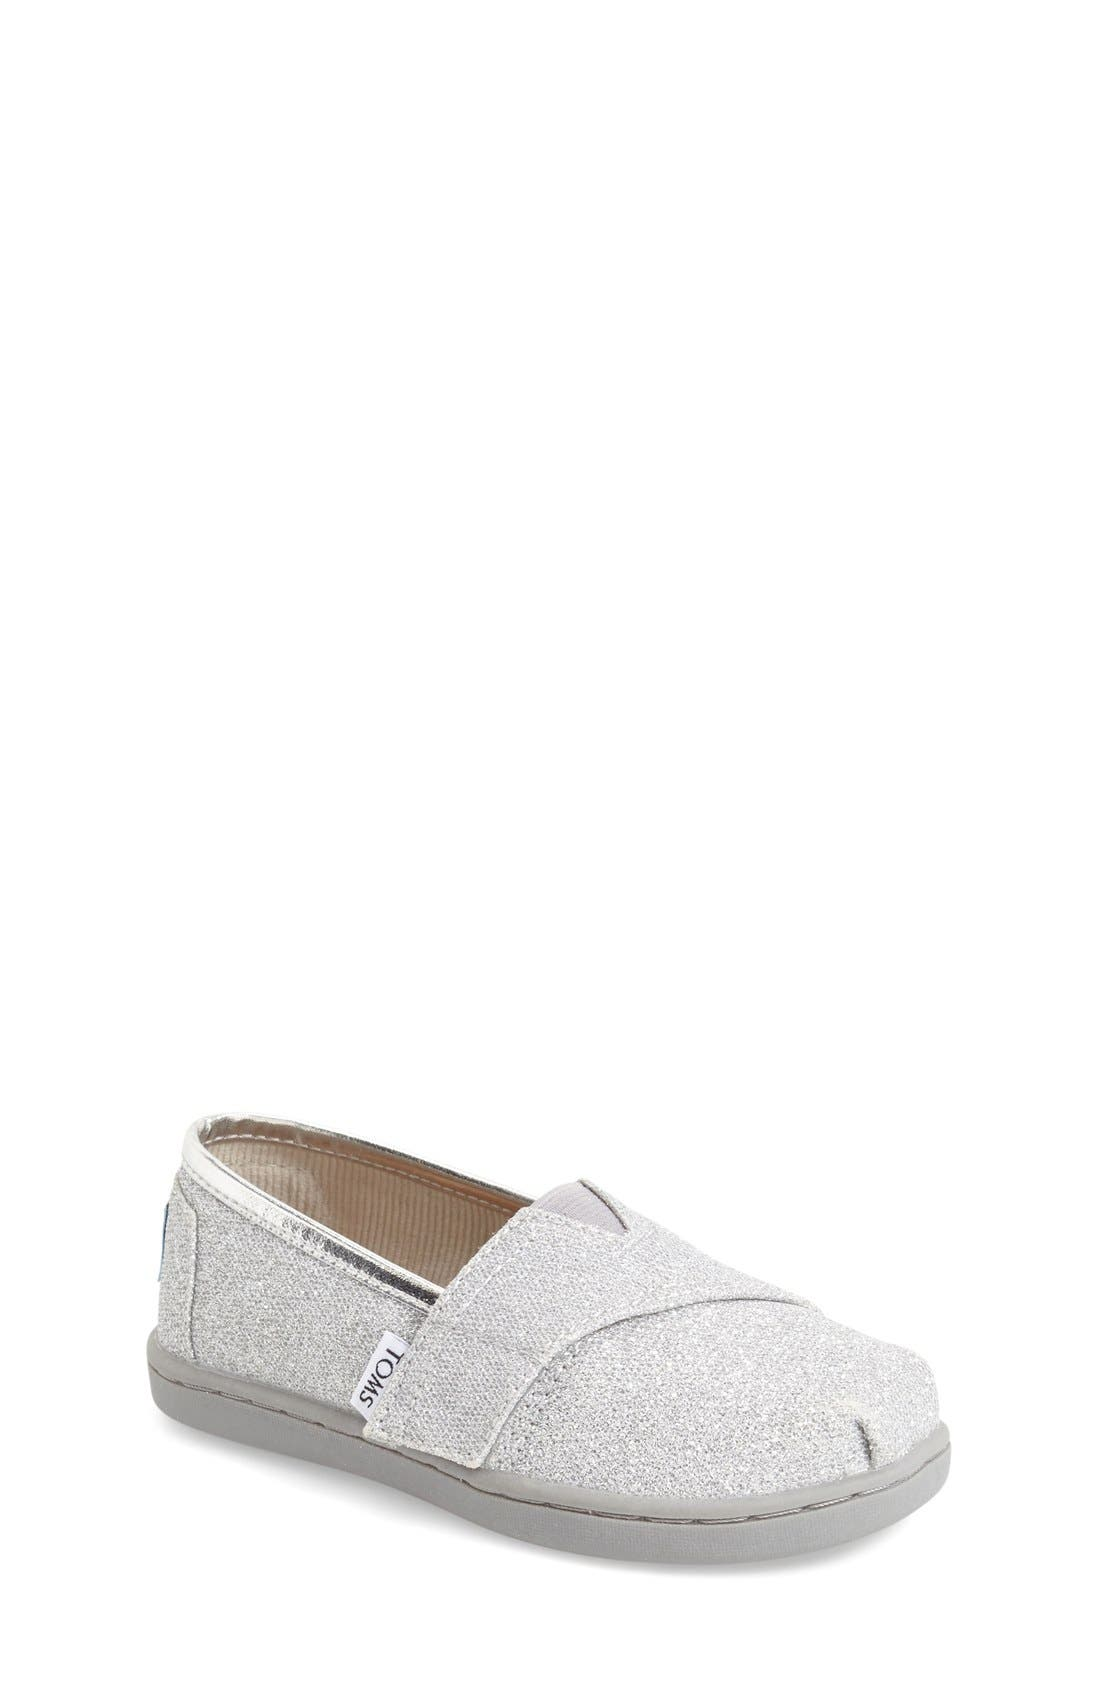 TOMS Classic Tiny - Glimmer Slip-On